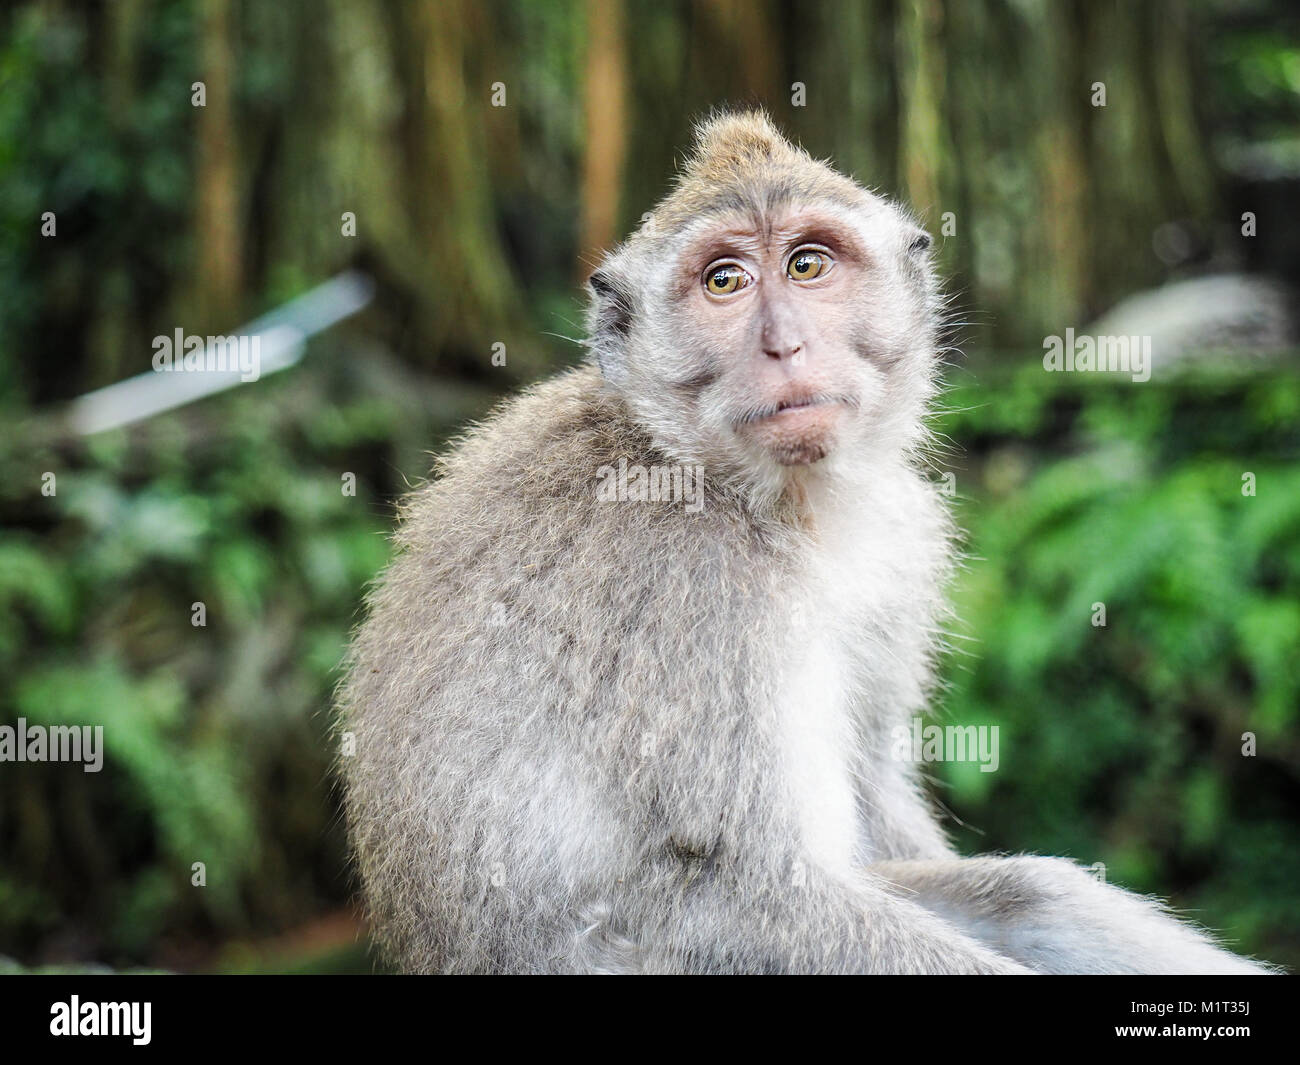 Monkey looking around. Facial expression of animal. Portrait of blue and resigned macaque. Stock Photo